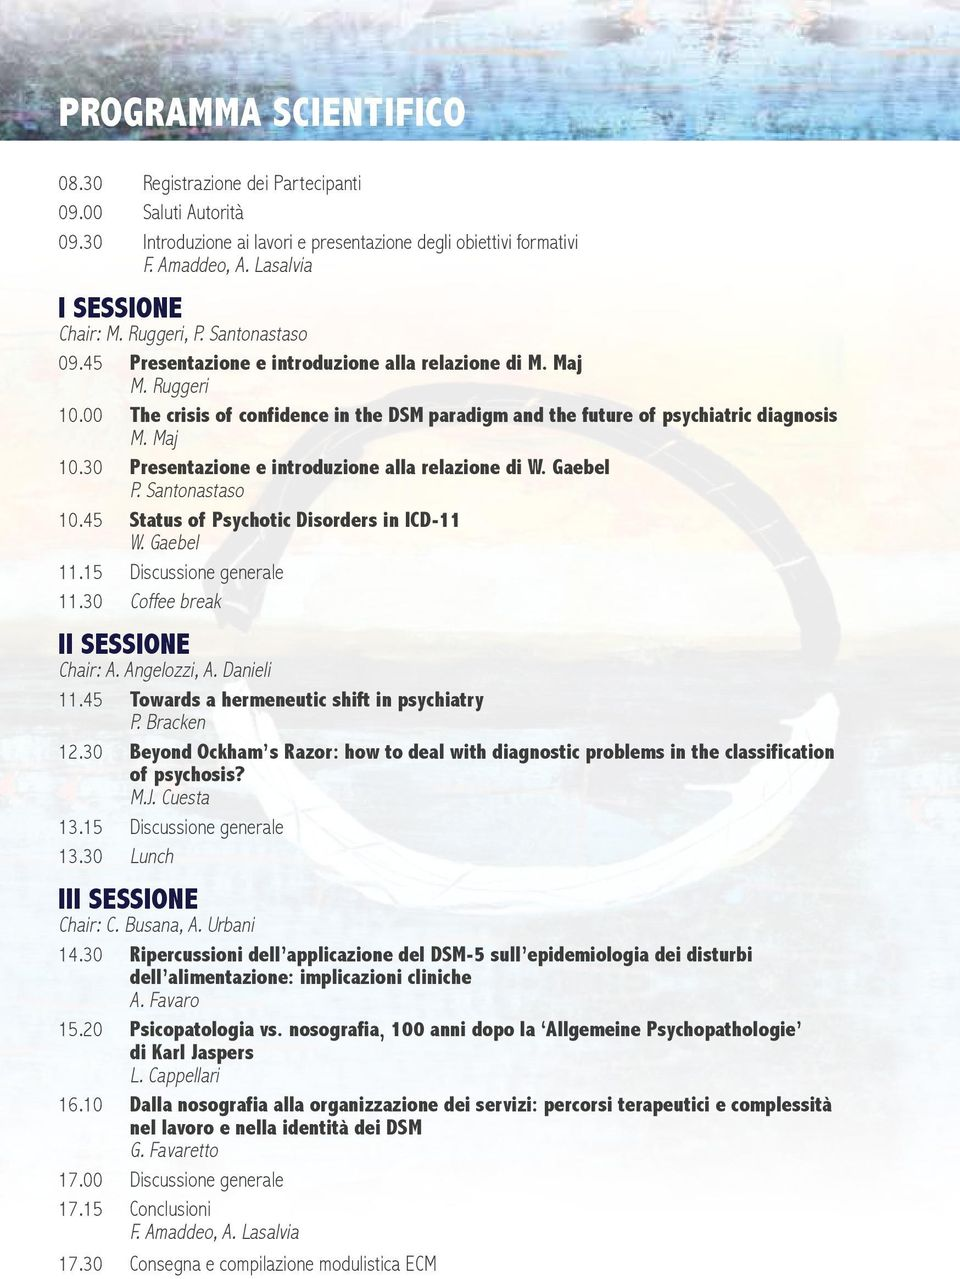 30 Presentazione e introduzione alla relazione di W. Gaebel P. Santonastaso 10.45 Status of Psychotic Disorders in ICD-11 W. Gaebel 11.15 Discussione generale 11.30 Coffee break II SESSIONE Chair: A.